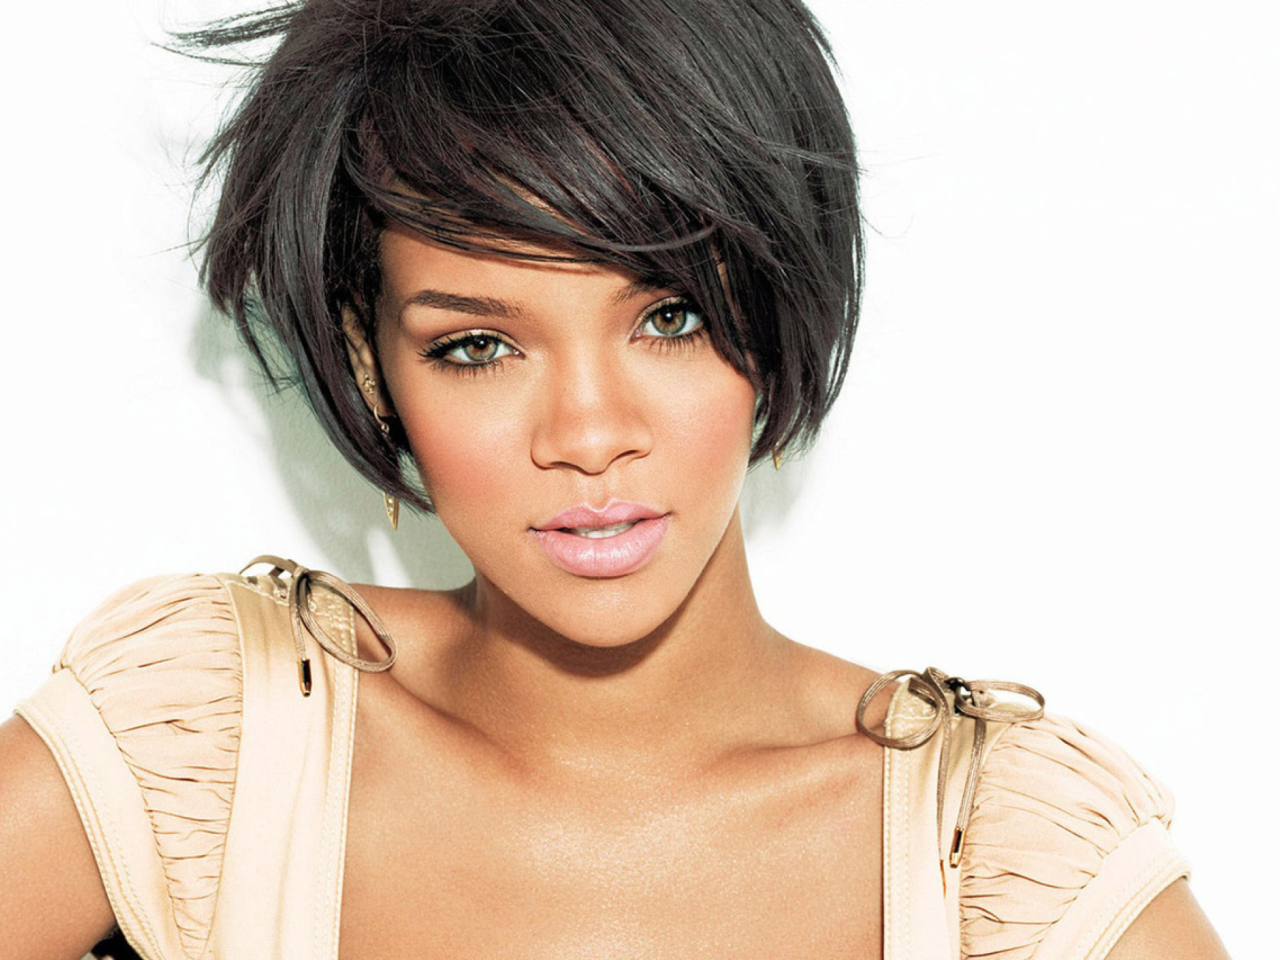 rihanna biography Mp3 rihanna biography we share it for review only buy mp3 songs rihanna biography legally on paid song download sites like itunes and amazon buy mp3 songs rihanna biography legally on paid song download sites like itunes and amazon.